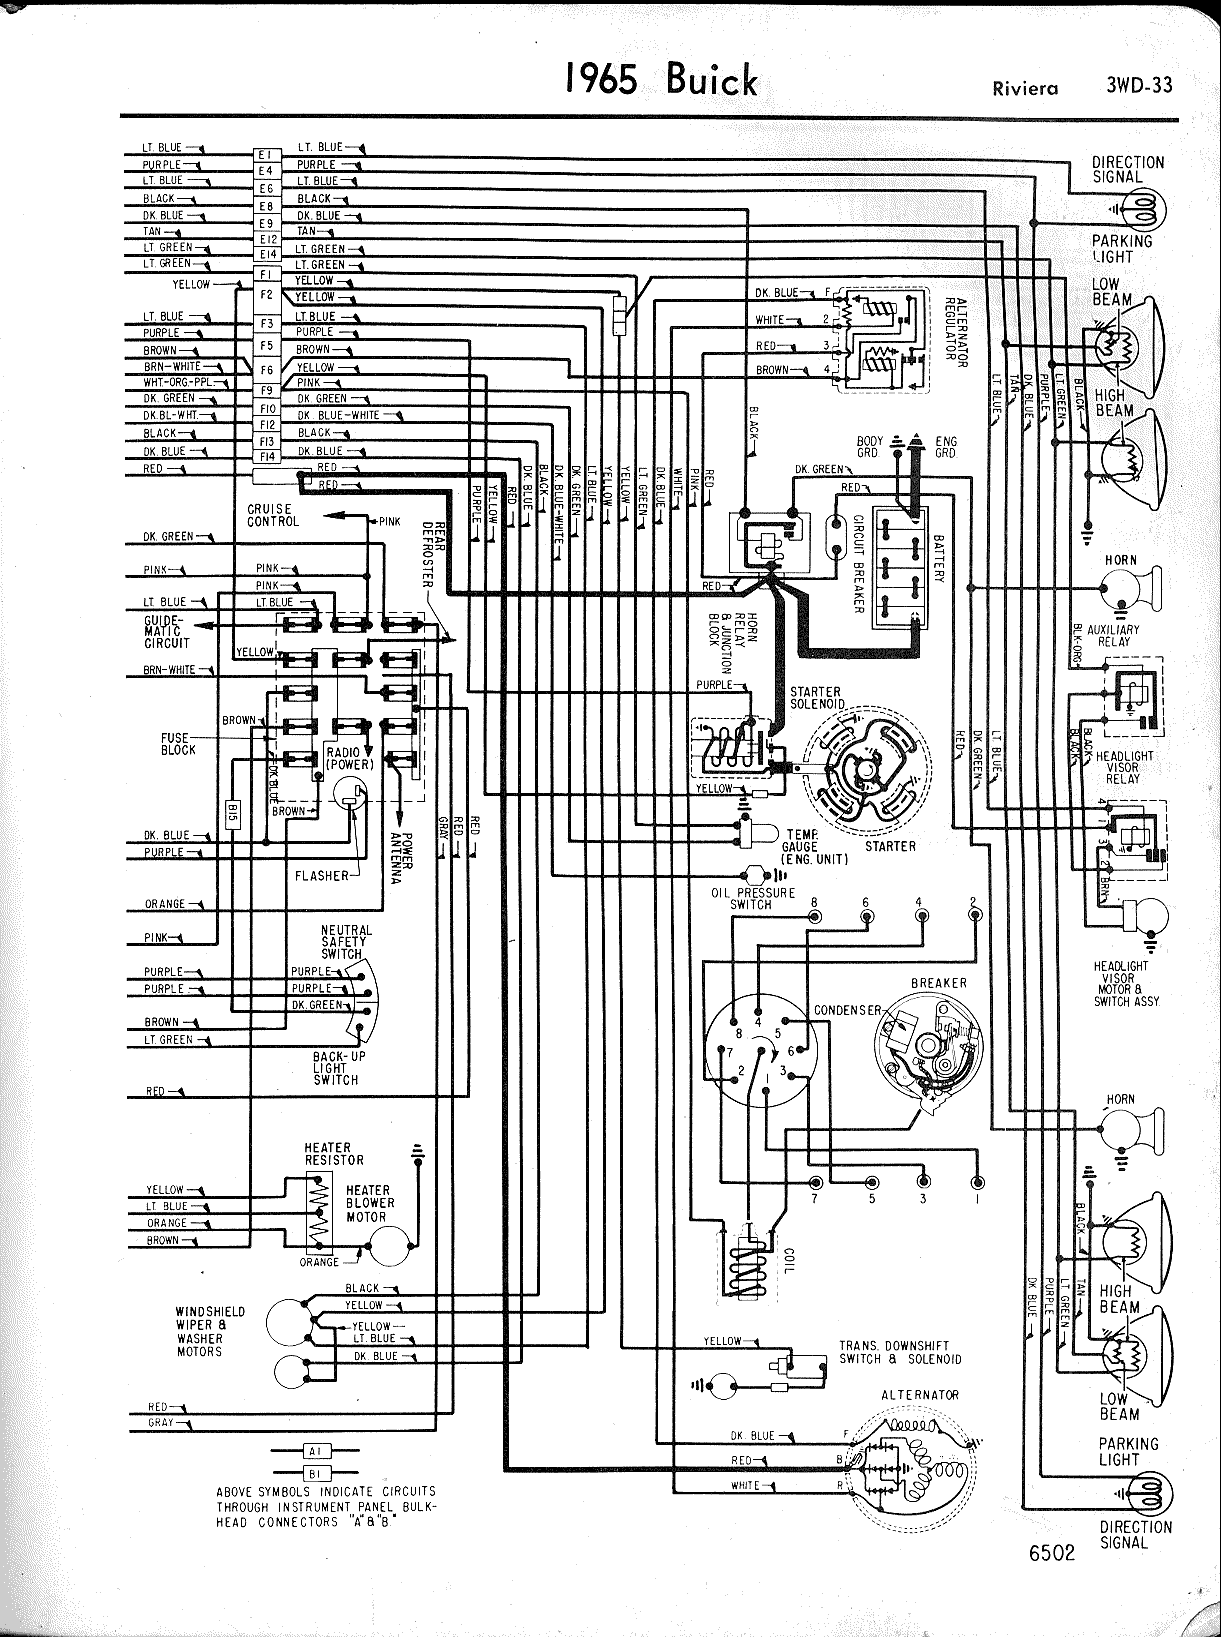 1965 Riviera Wiring Diagram Reinvent Your Yamaha Schematic Buick Diagrams 1957 Rh Oldcarmanualproject Com 1964